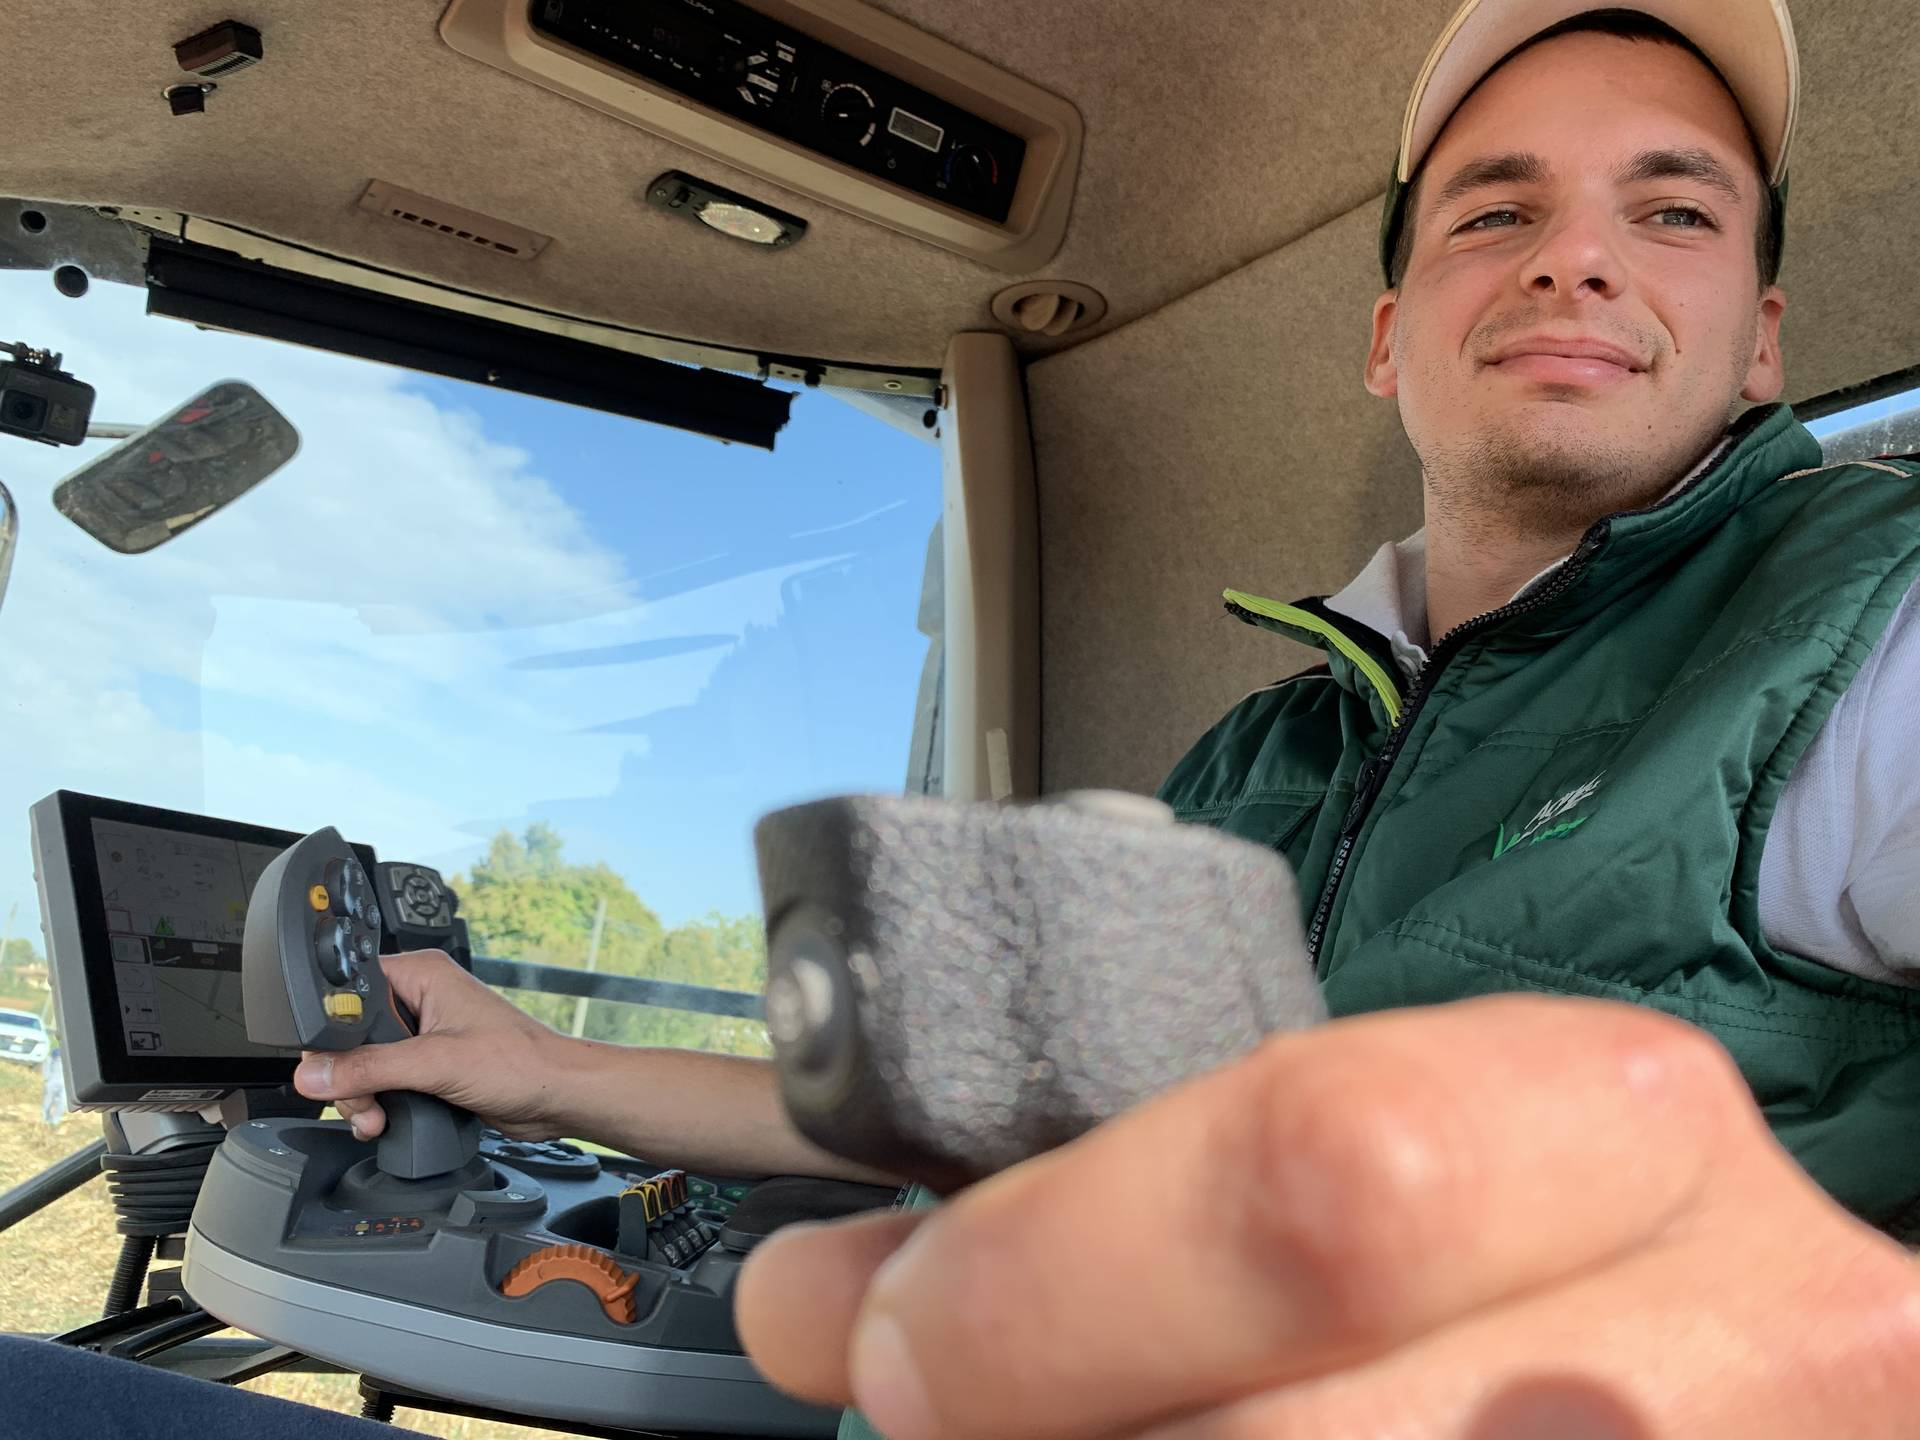 """Farmer Andrea Sandrini was a bit skeptical about the notion of joystick steering before taking the driver's seat. """"I am positively surprised. The joystick reacts fast and precisely to my hand movements. Steering this way is very easy,"""" he says."""